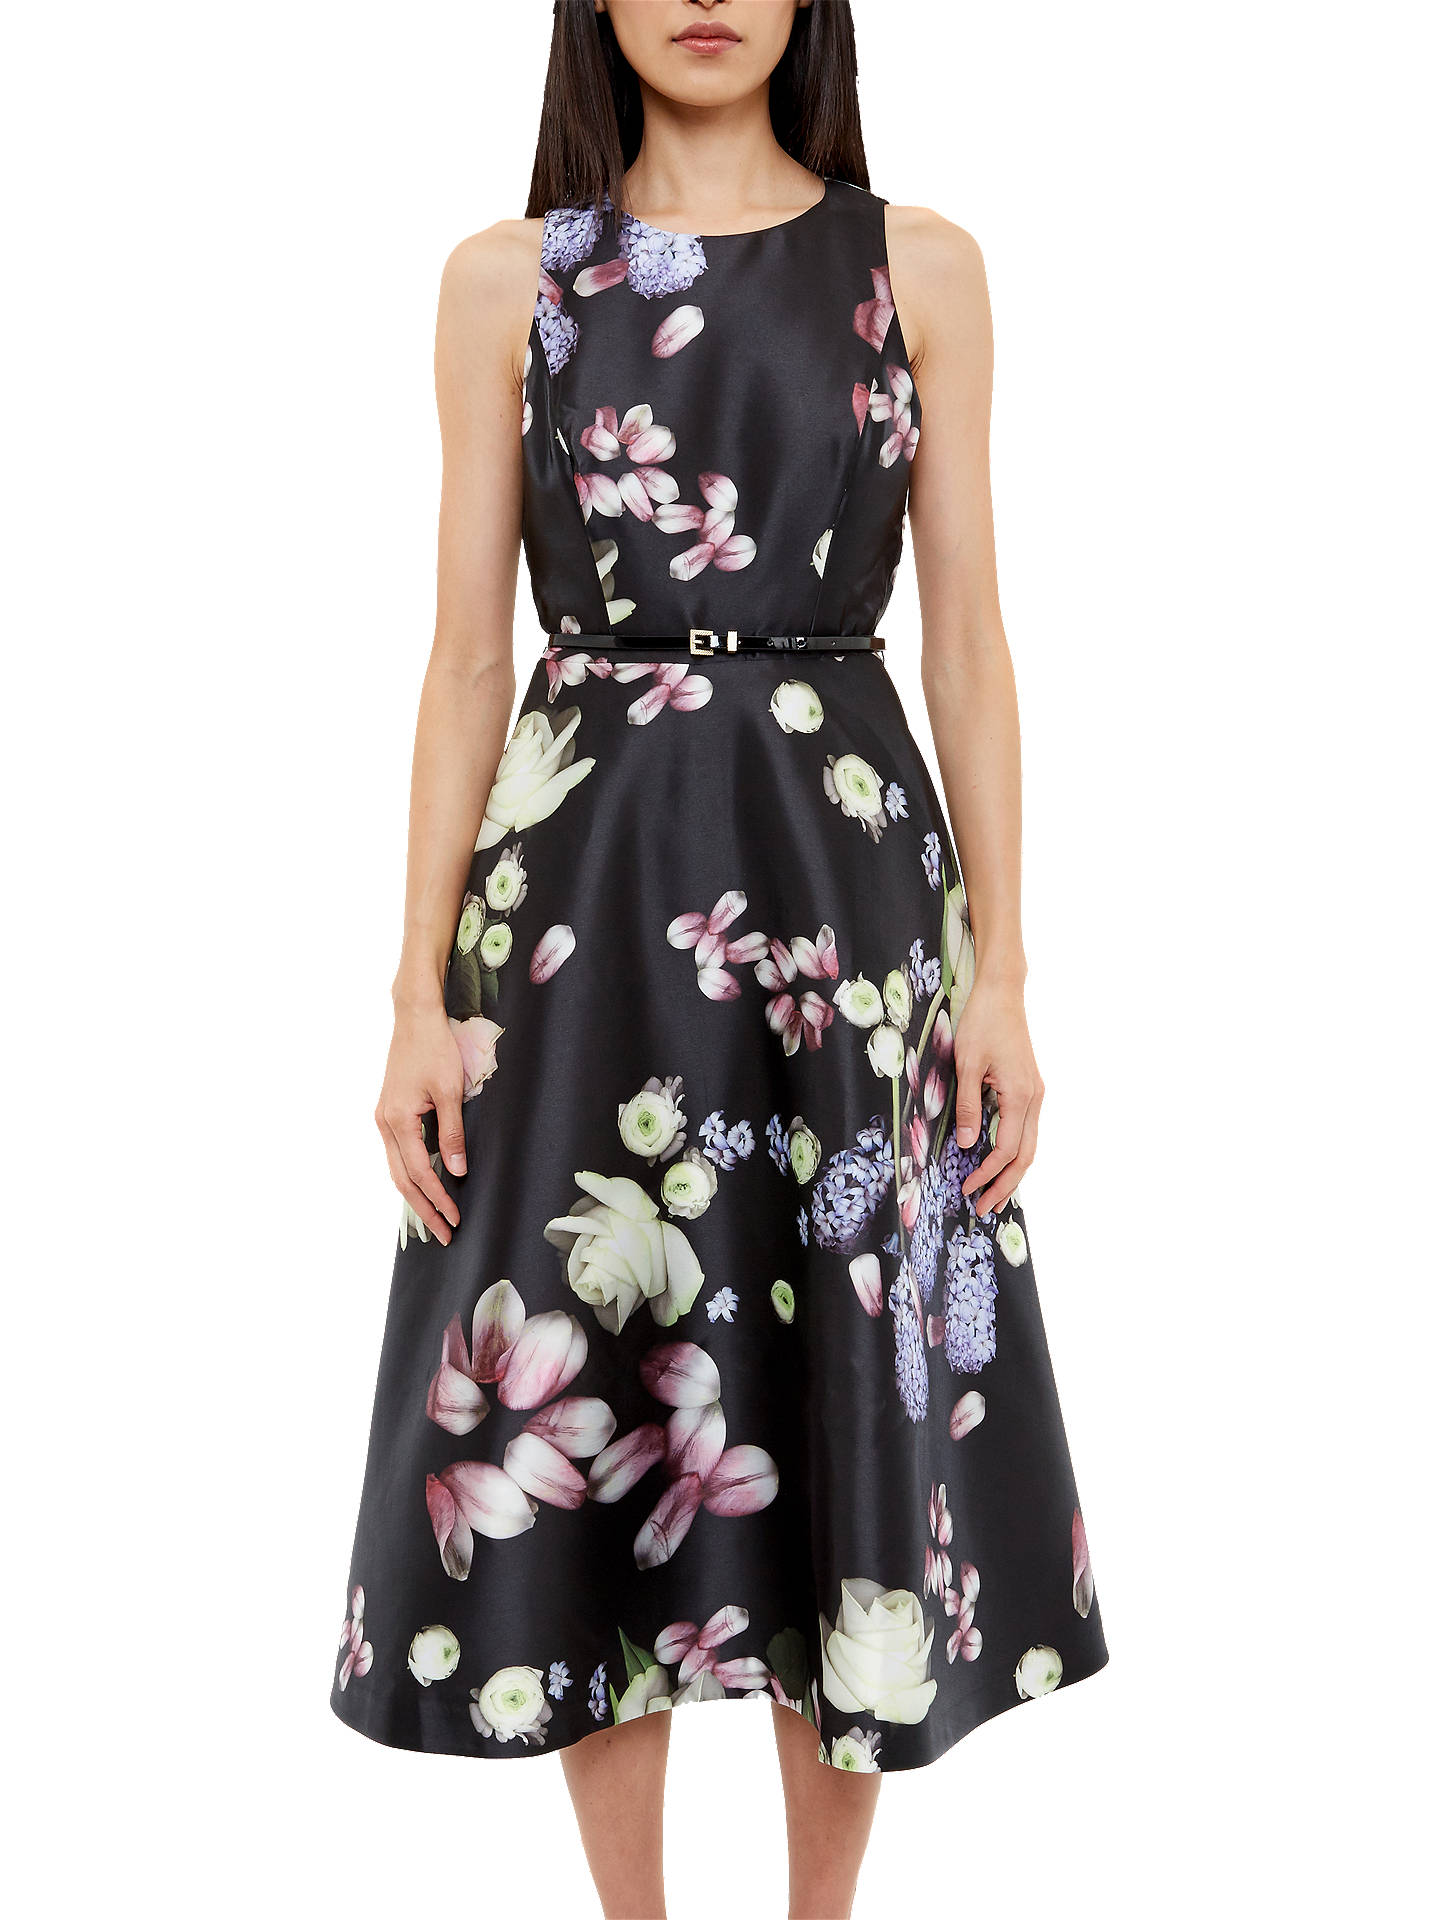 76b077f31dab7 Buy Ted Baker Rosa Kensington Floral Midi Dress, Black, 0 Online at  johnlewis.